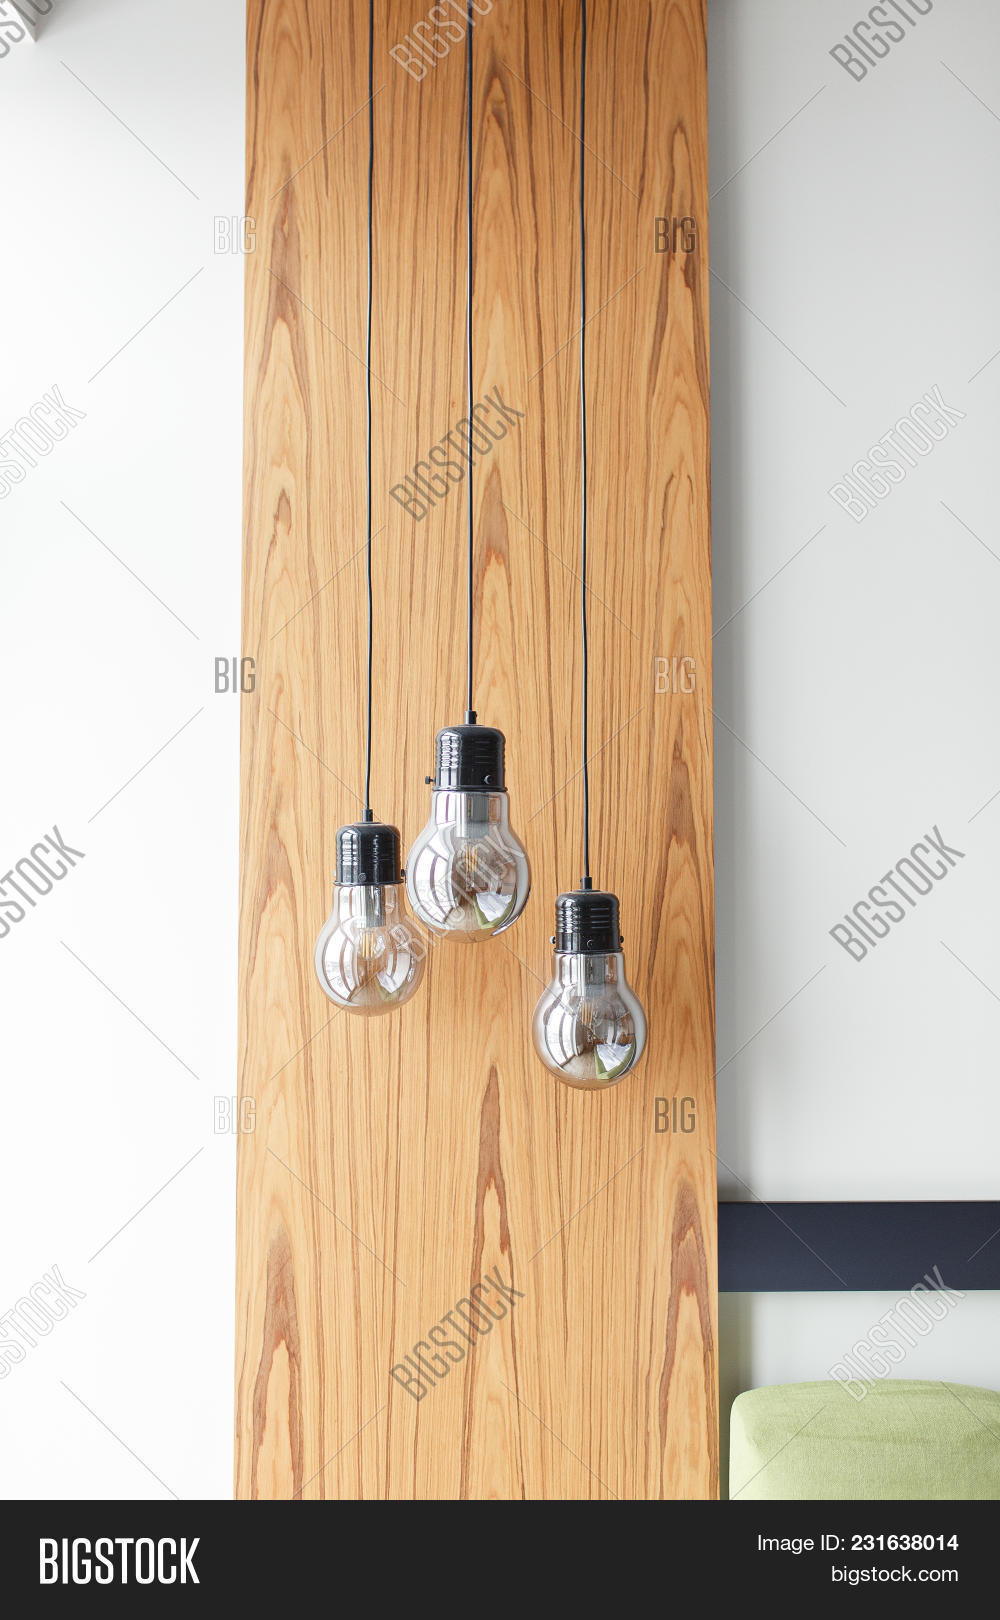 Light Bulbs On Wooden Image & Photo (Free Trial) | Bigstock